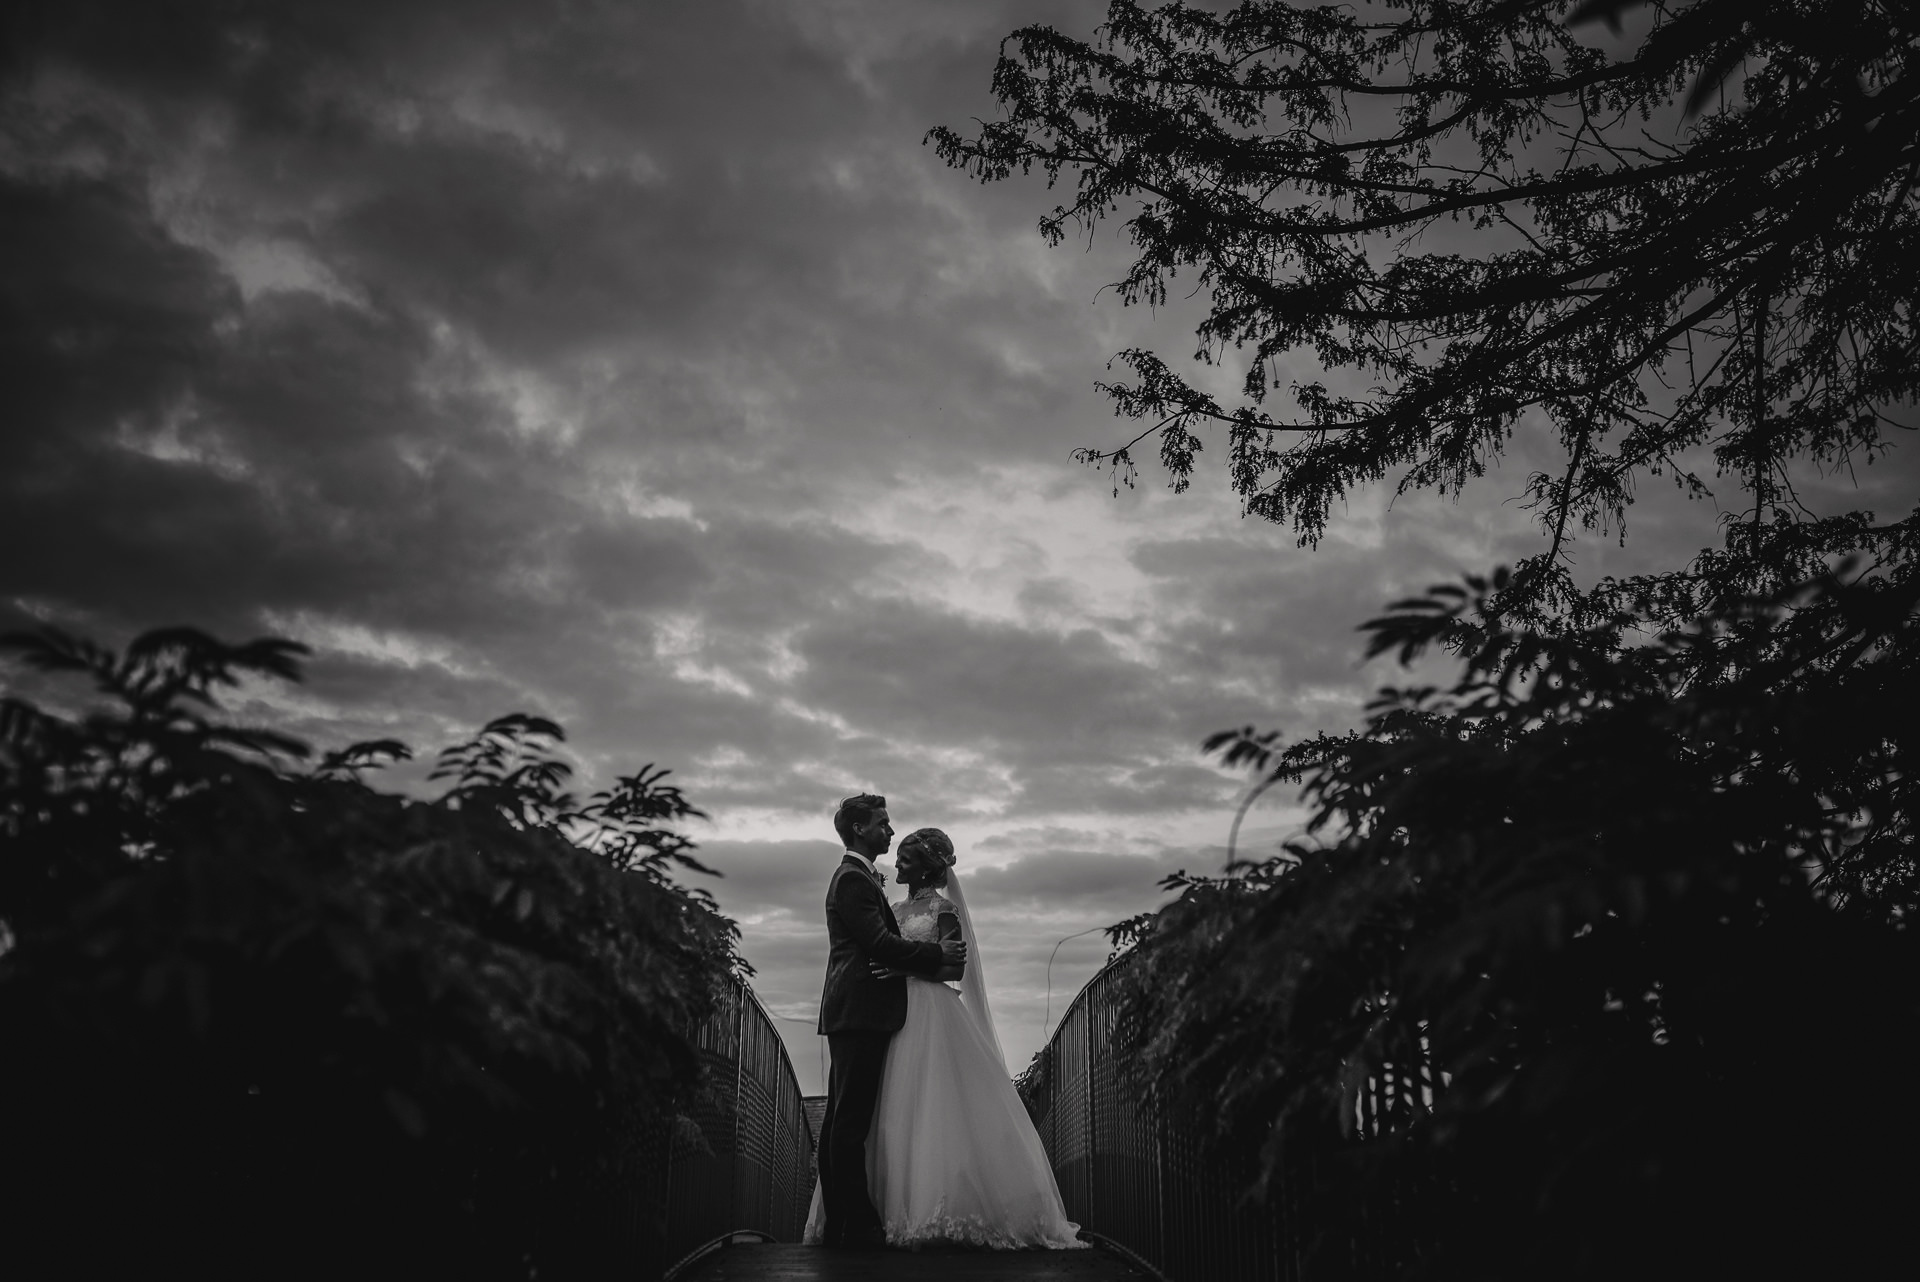 Caswell House Wedding Photographer - Jessica & Chris 18